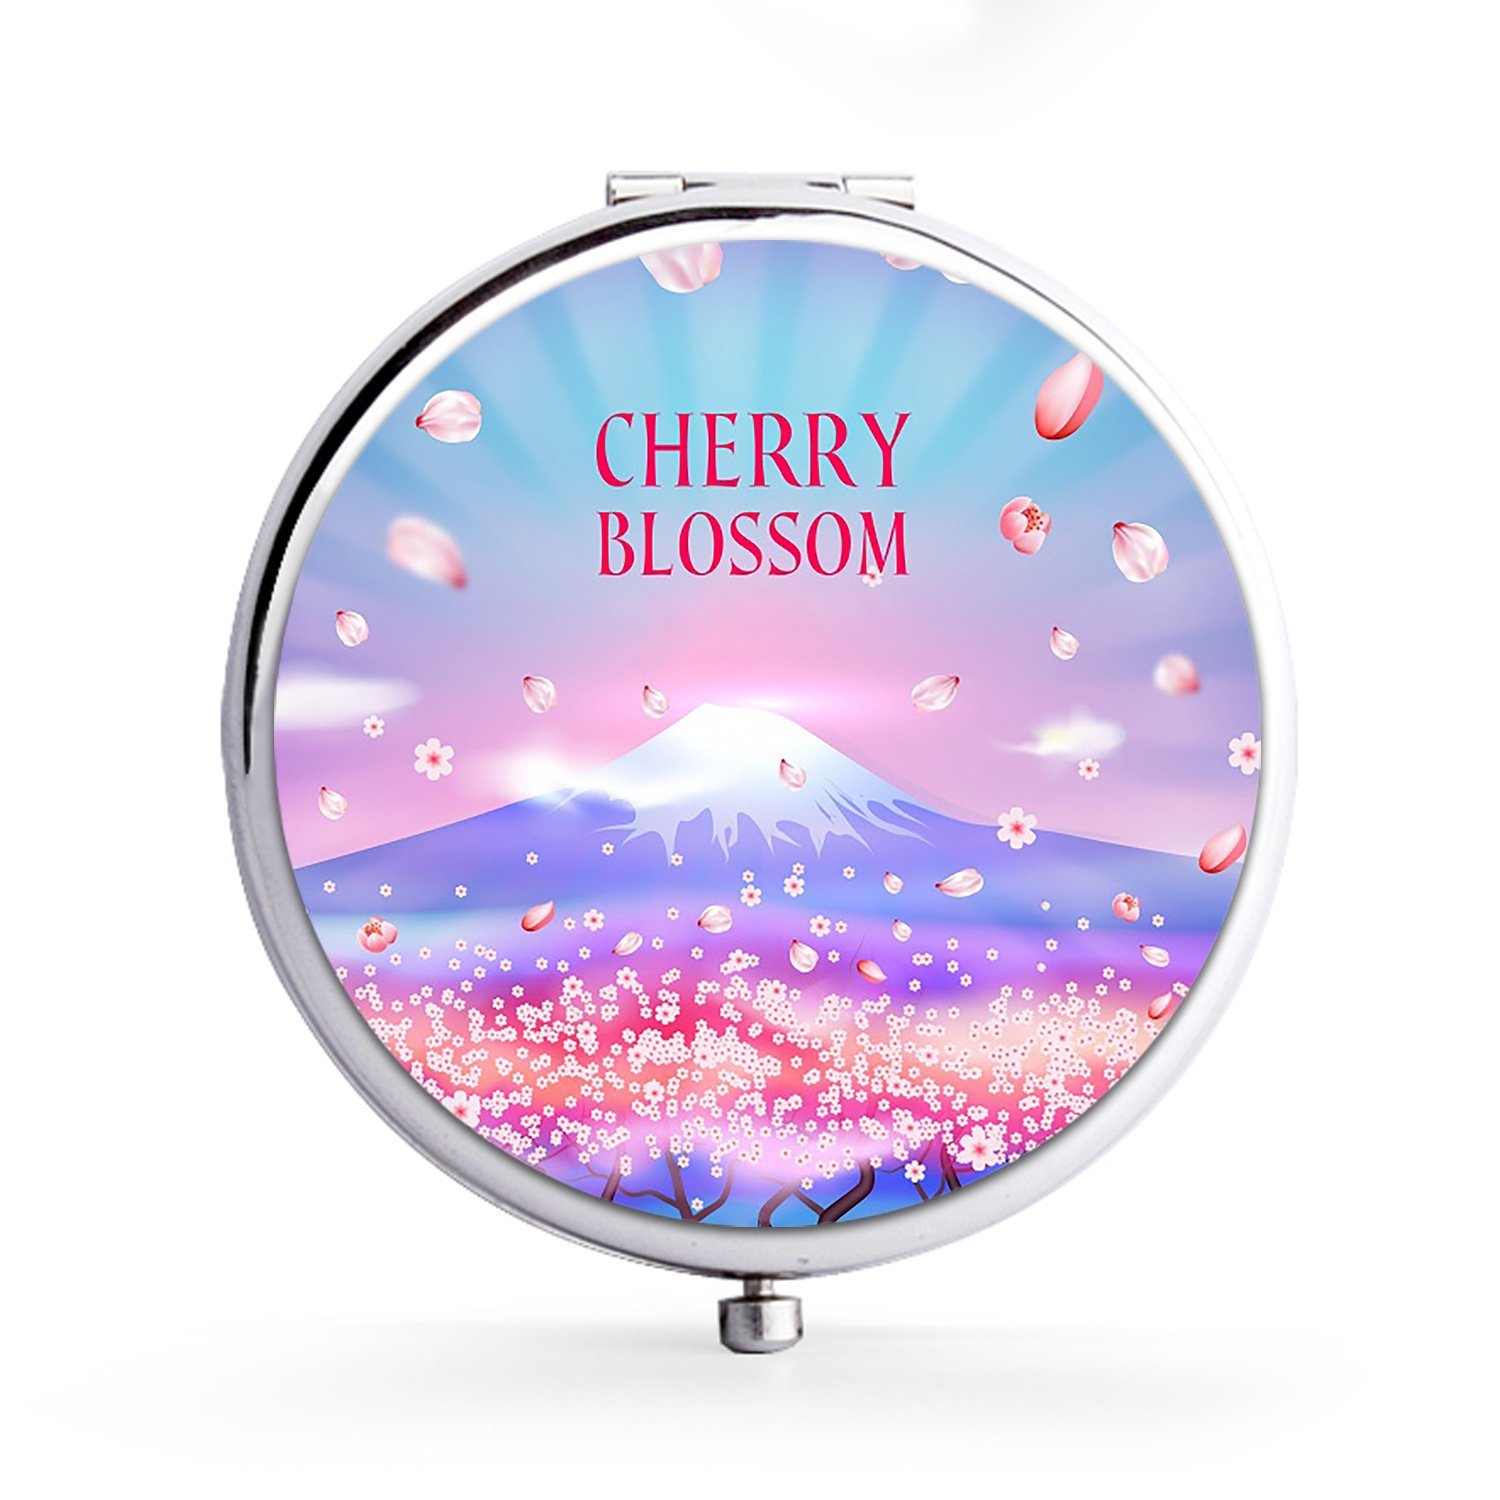 XIANN Mirror Makeup Mini Mirror Handhold Double Side Compact Travel Mirrors - Cherry Blossom Watercolor